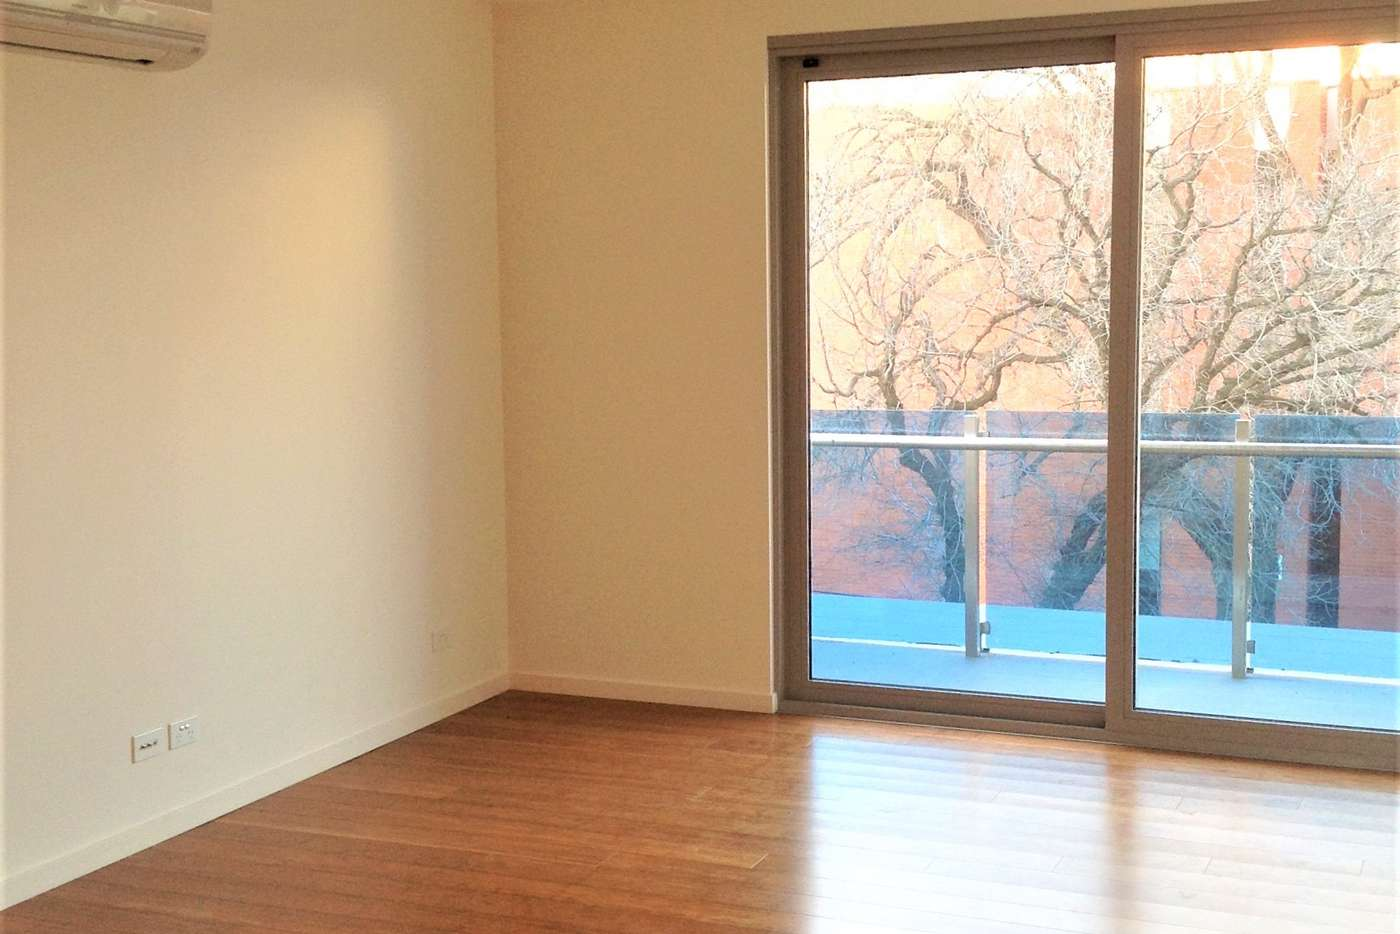 Main view of Homely apartment listing, Unit 204/77-81 Cardigan St, Carlton VIC 3053